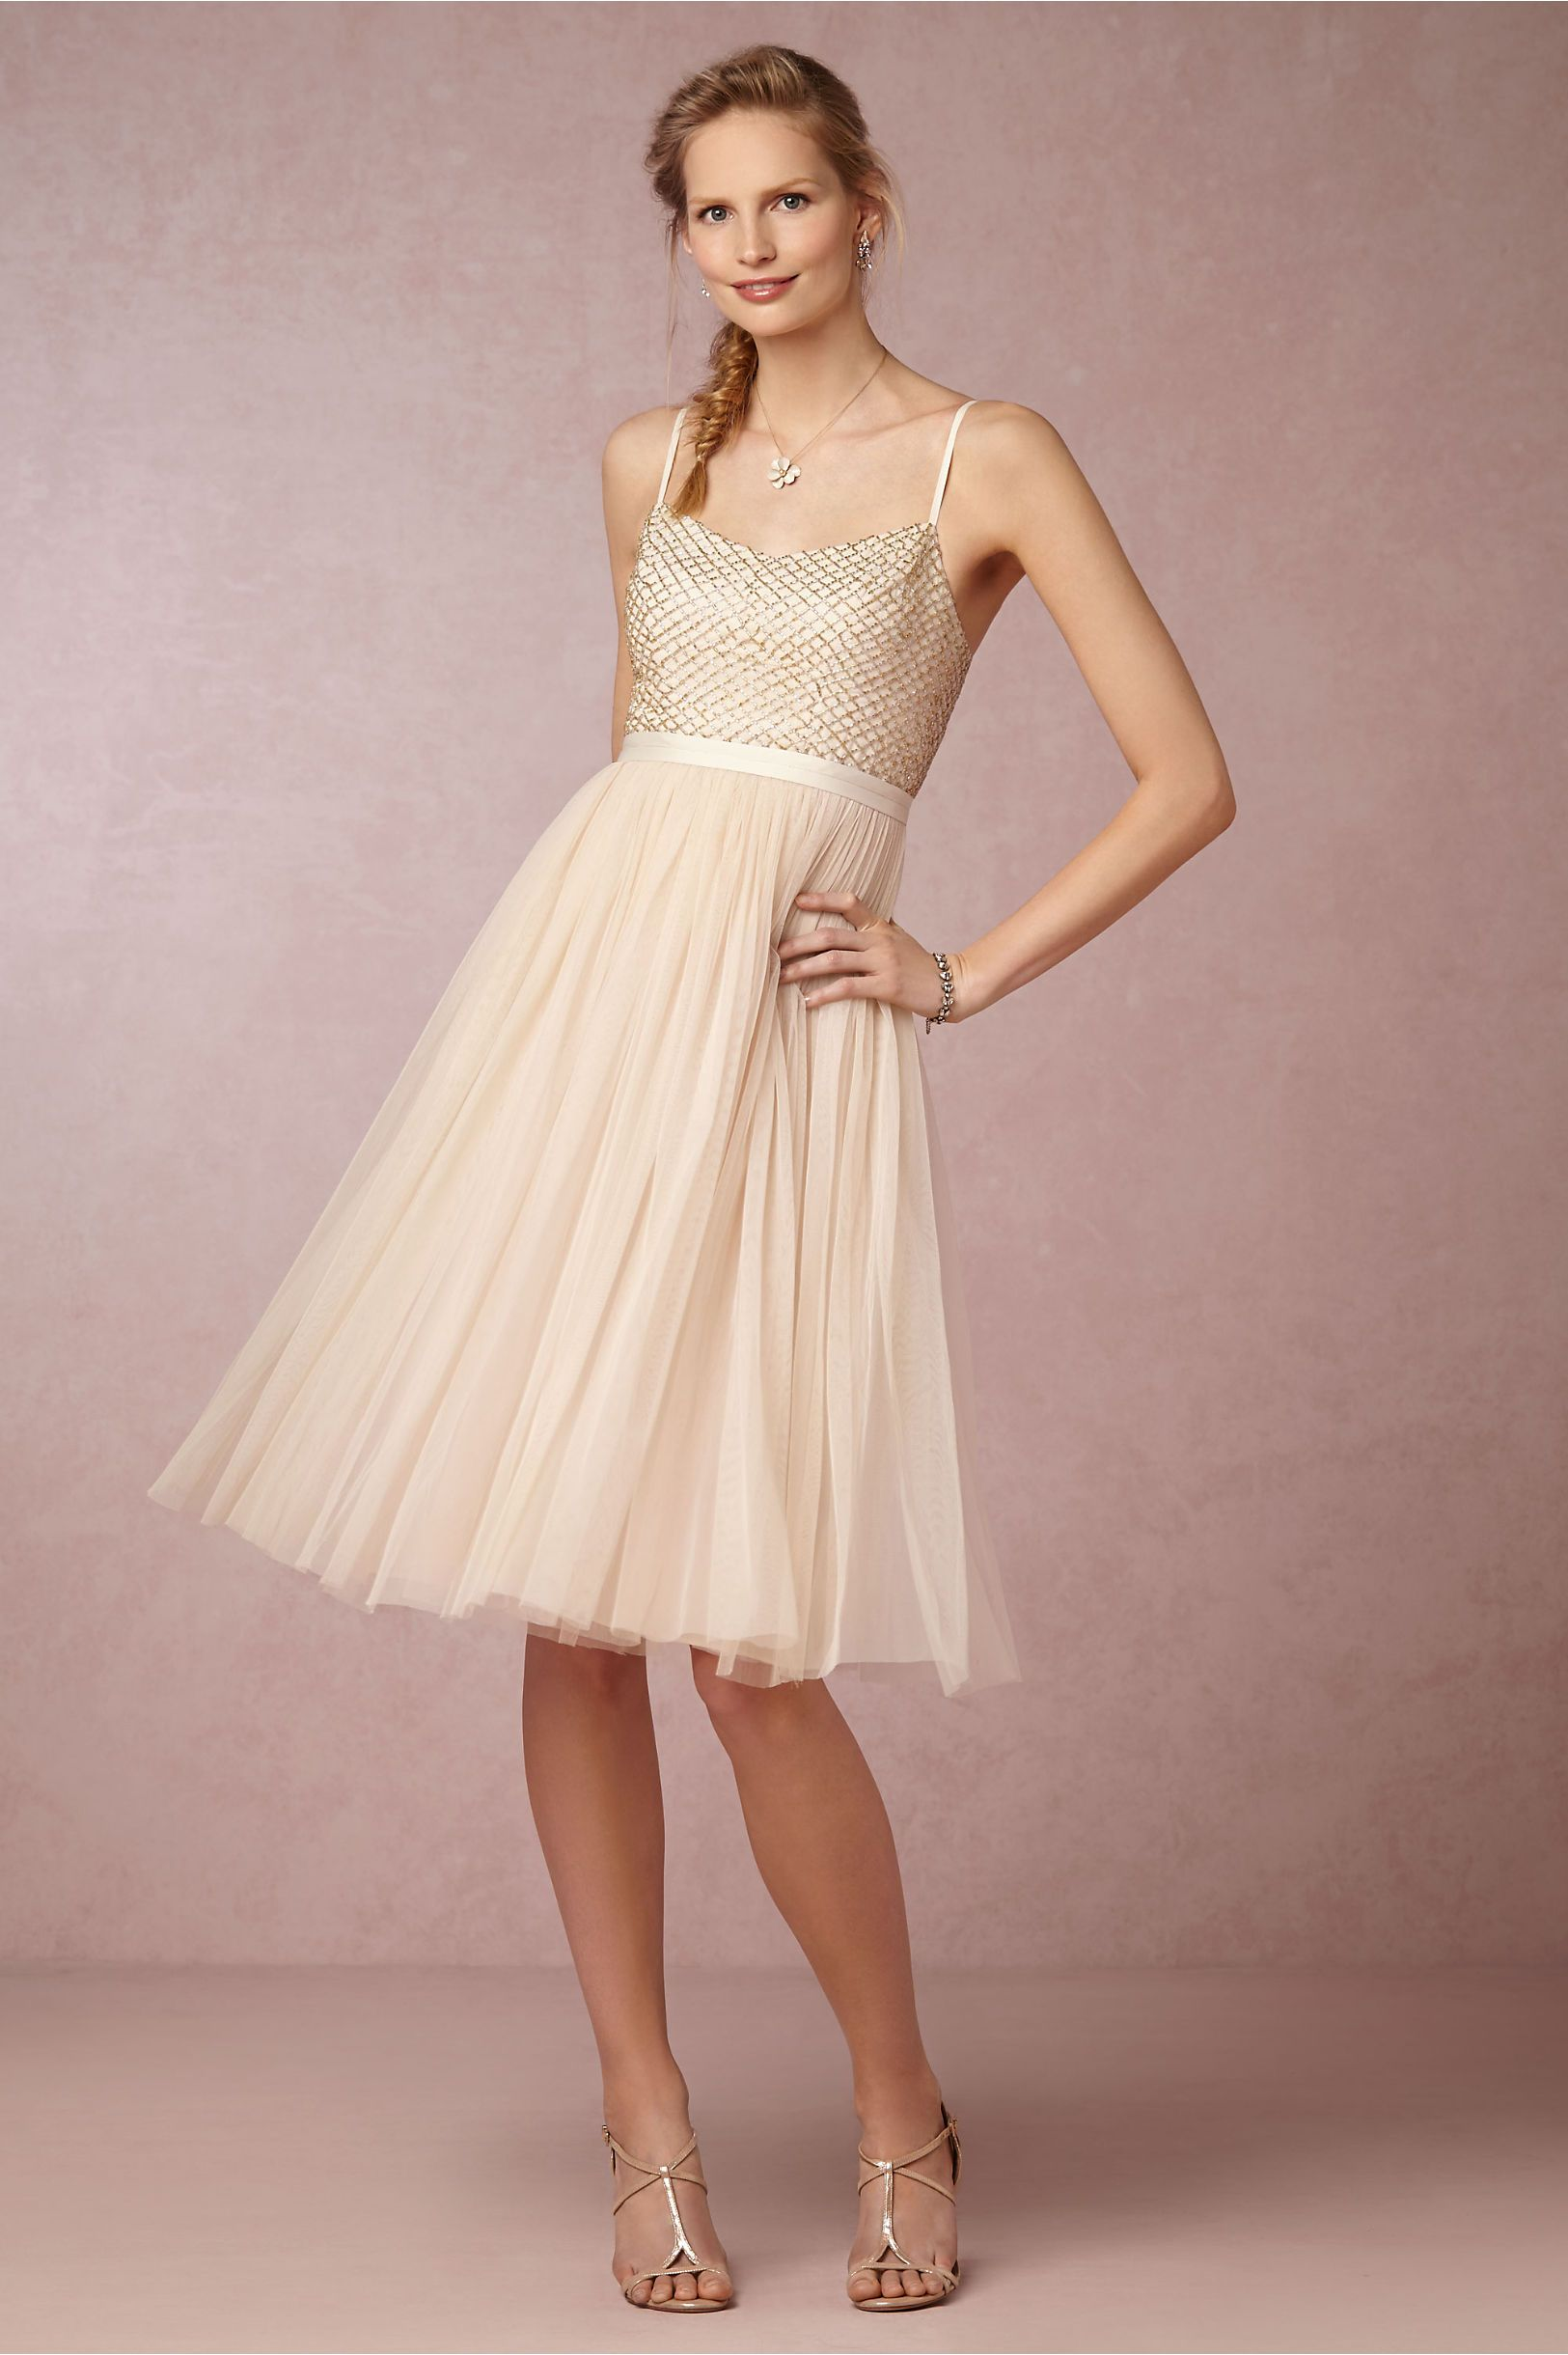 Coppelia ballet dress in sale at bhldn bridesladies pinterest